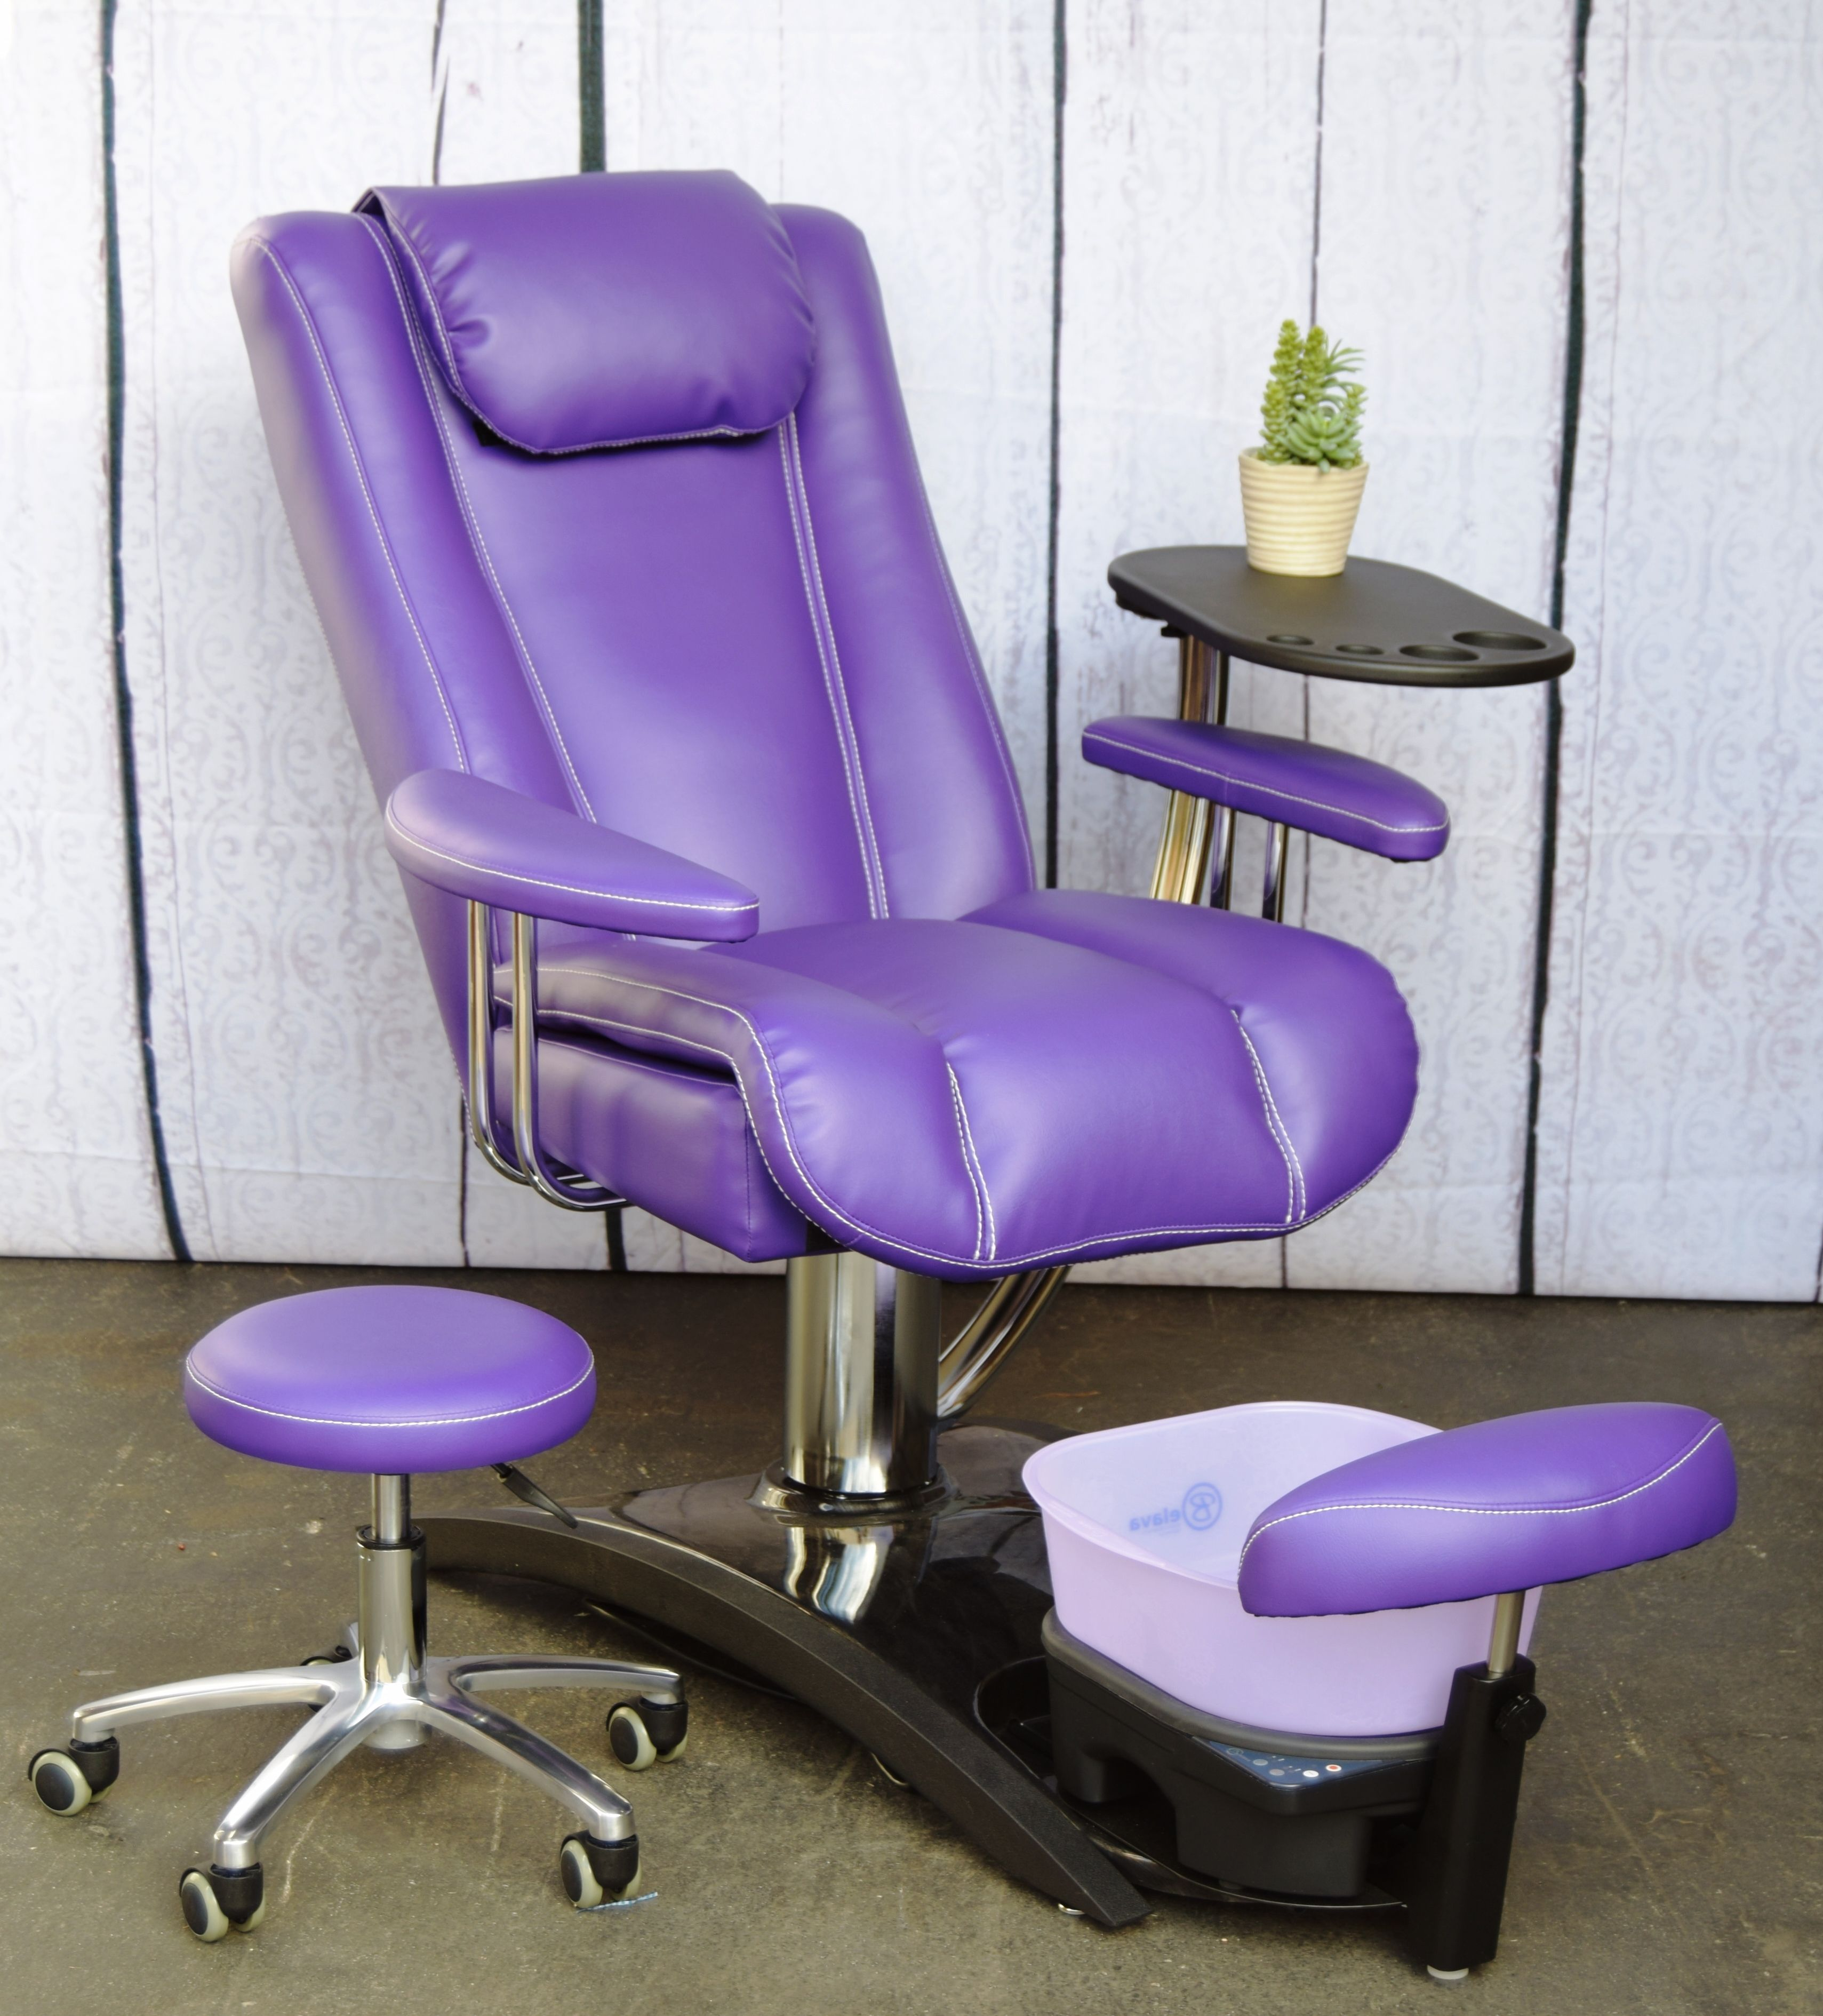 Spa Pedicure Chair Ebay >> Pedicure Chair Embrace No Plumbing In 2019 Pedicure Chair